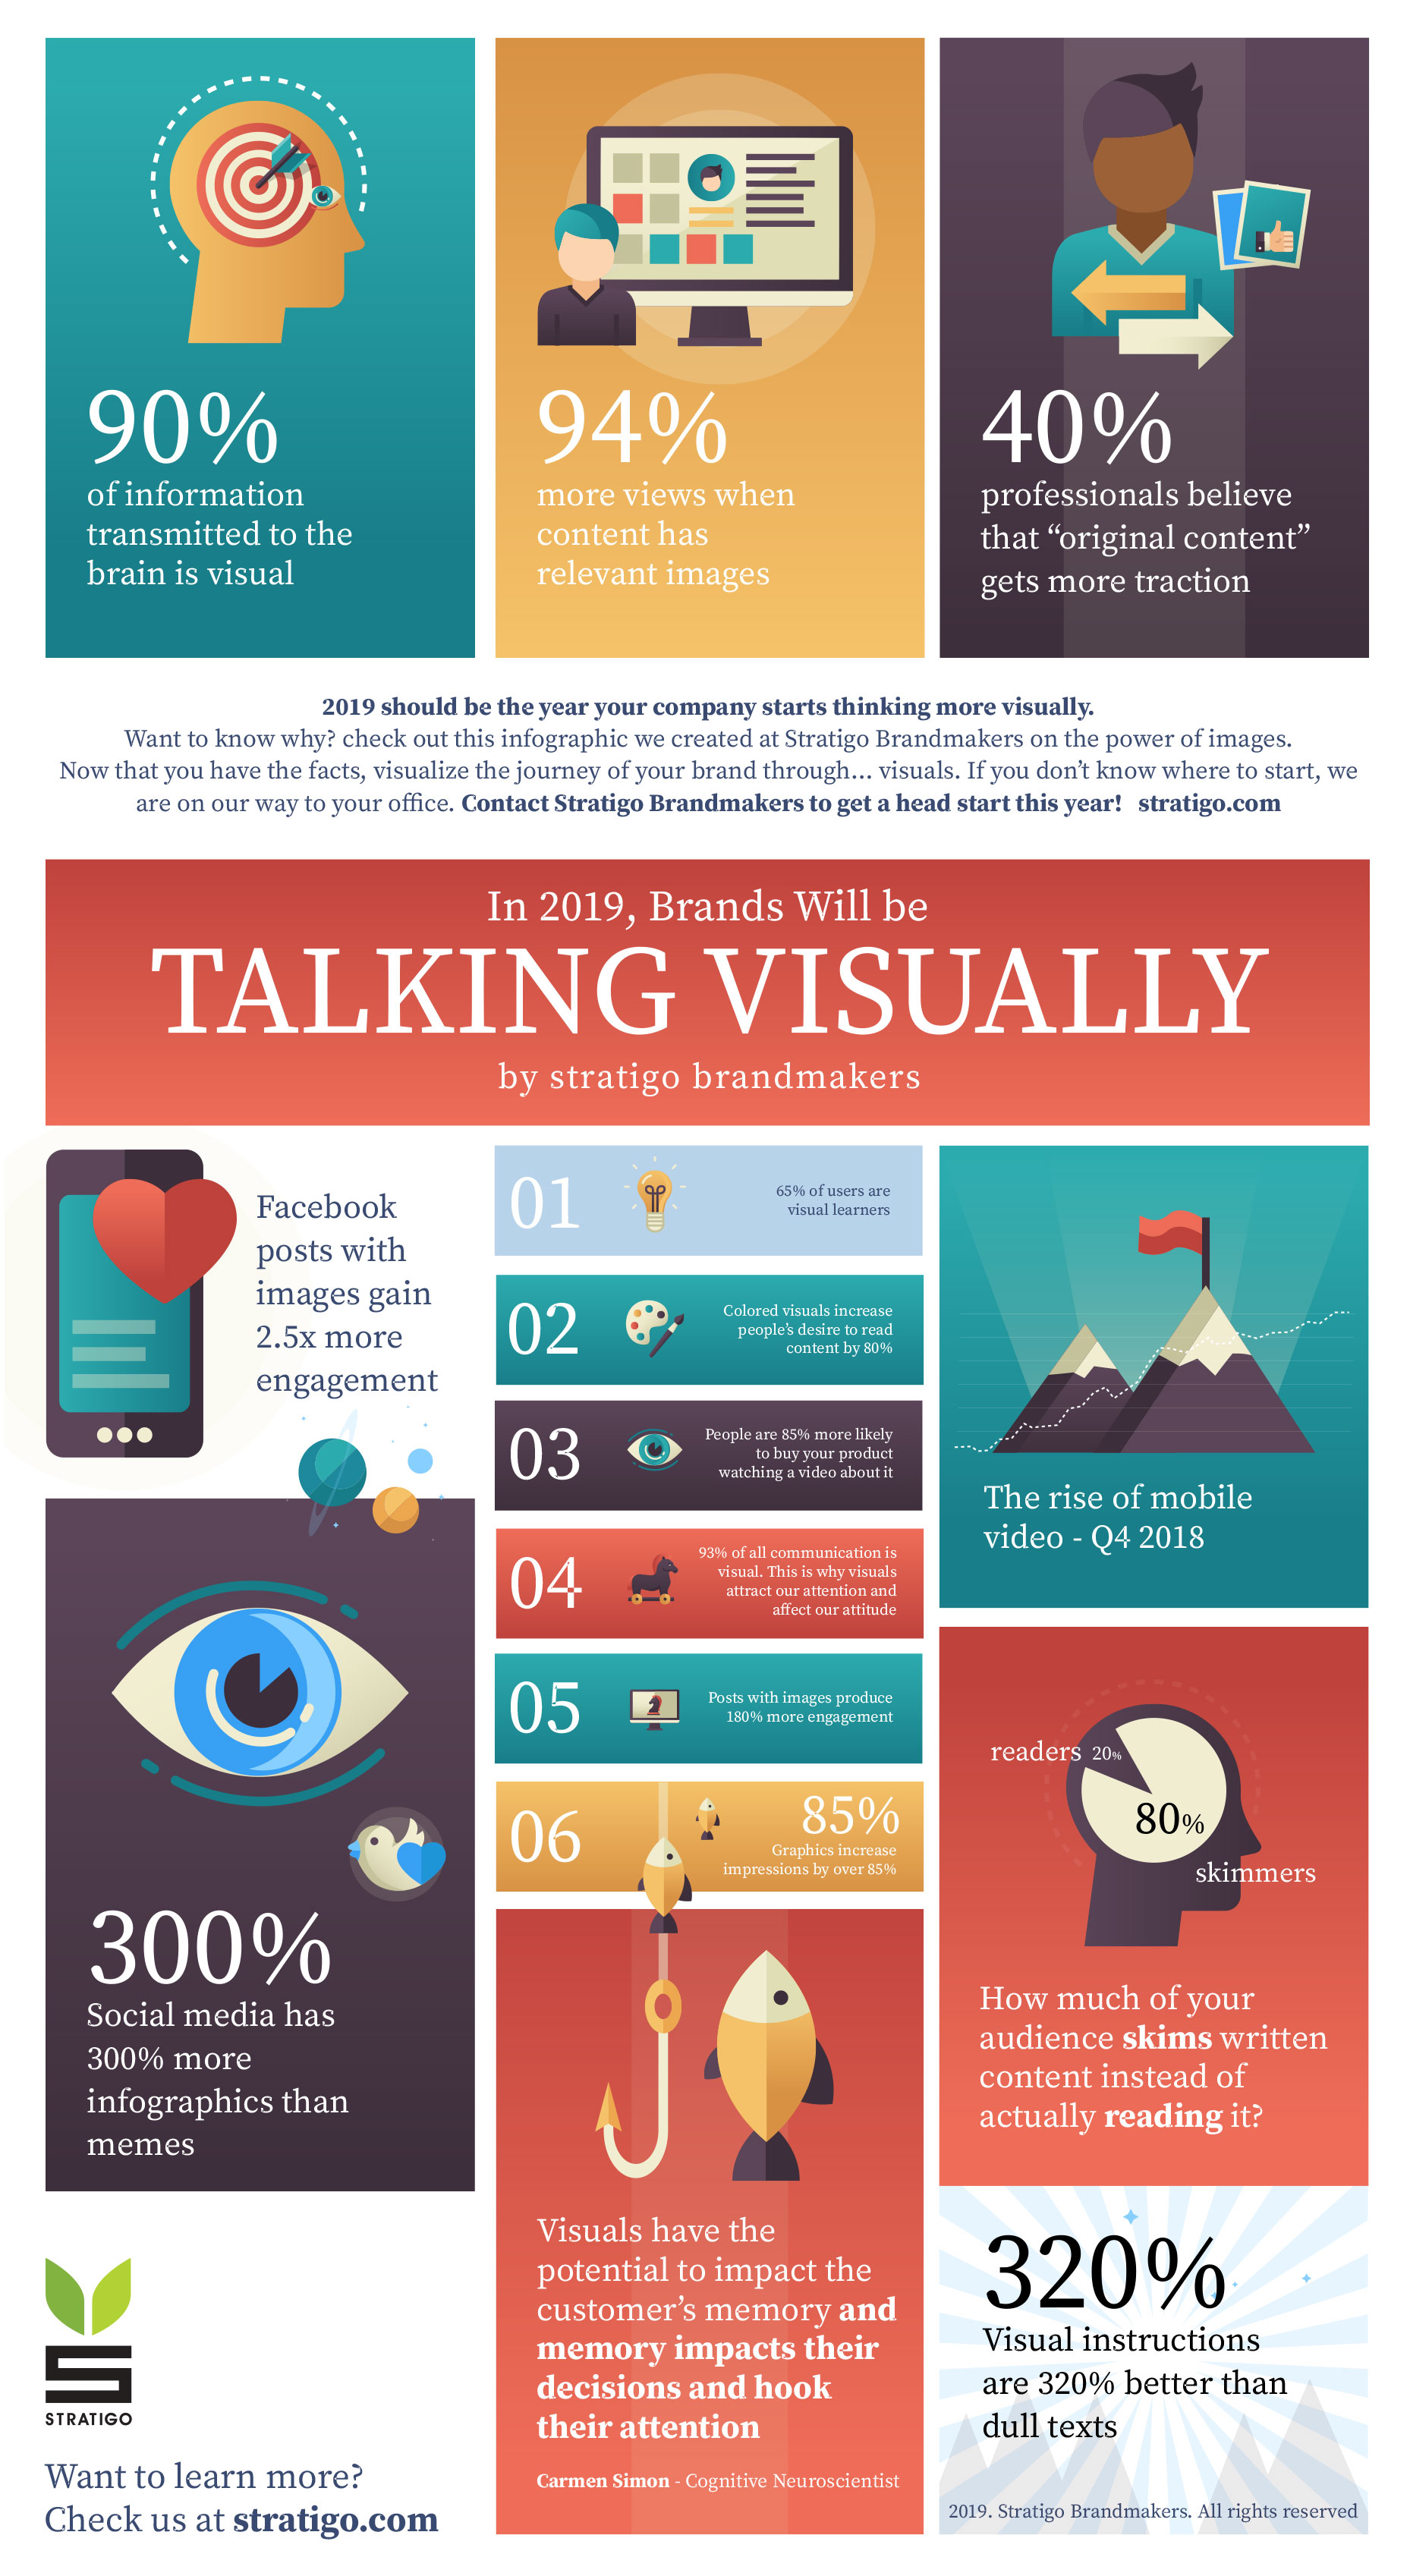 talking-visually-infographic-2019